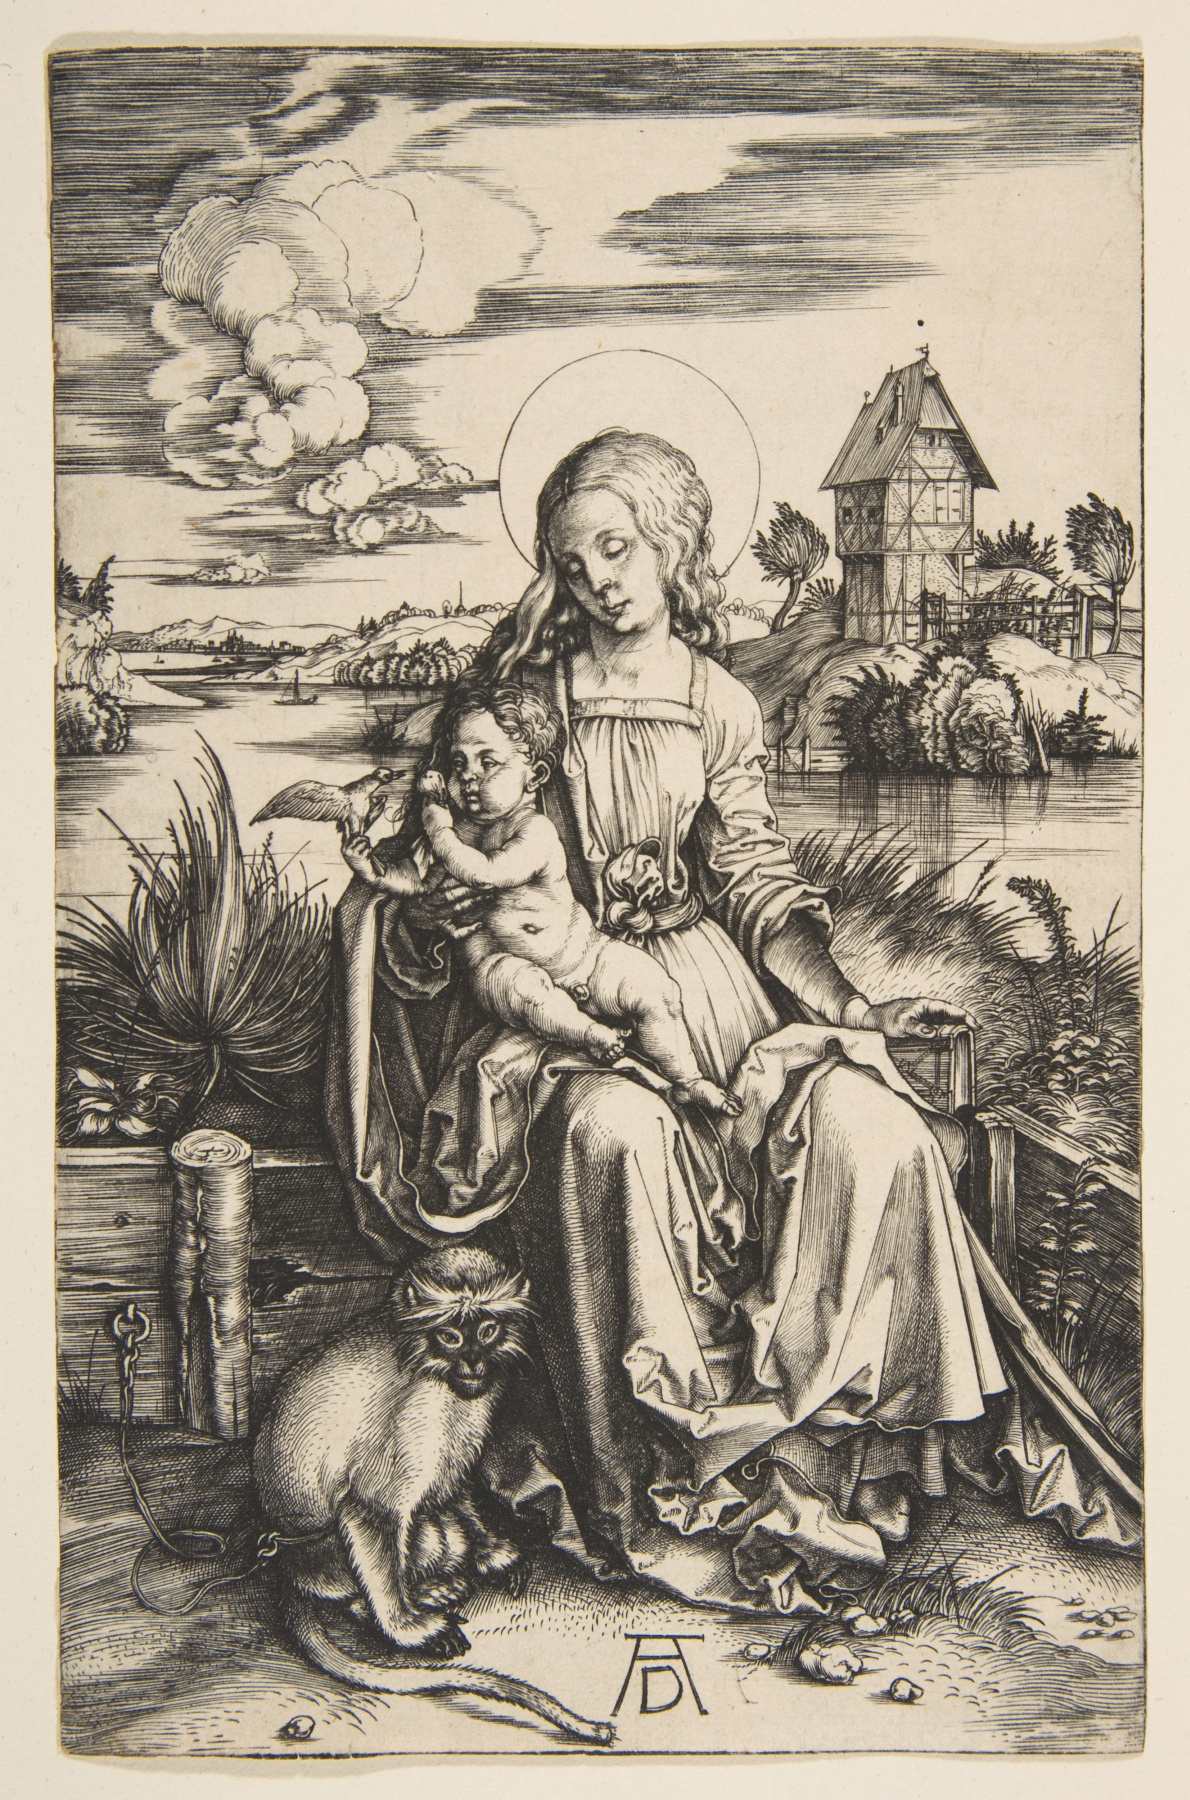 Albrecht Durer. Mary and child with a monkey